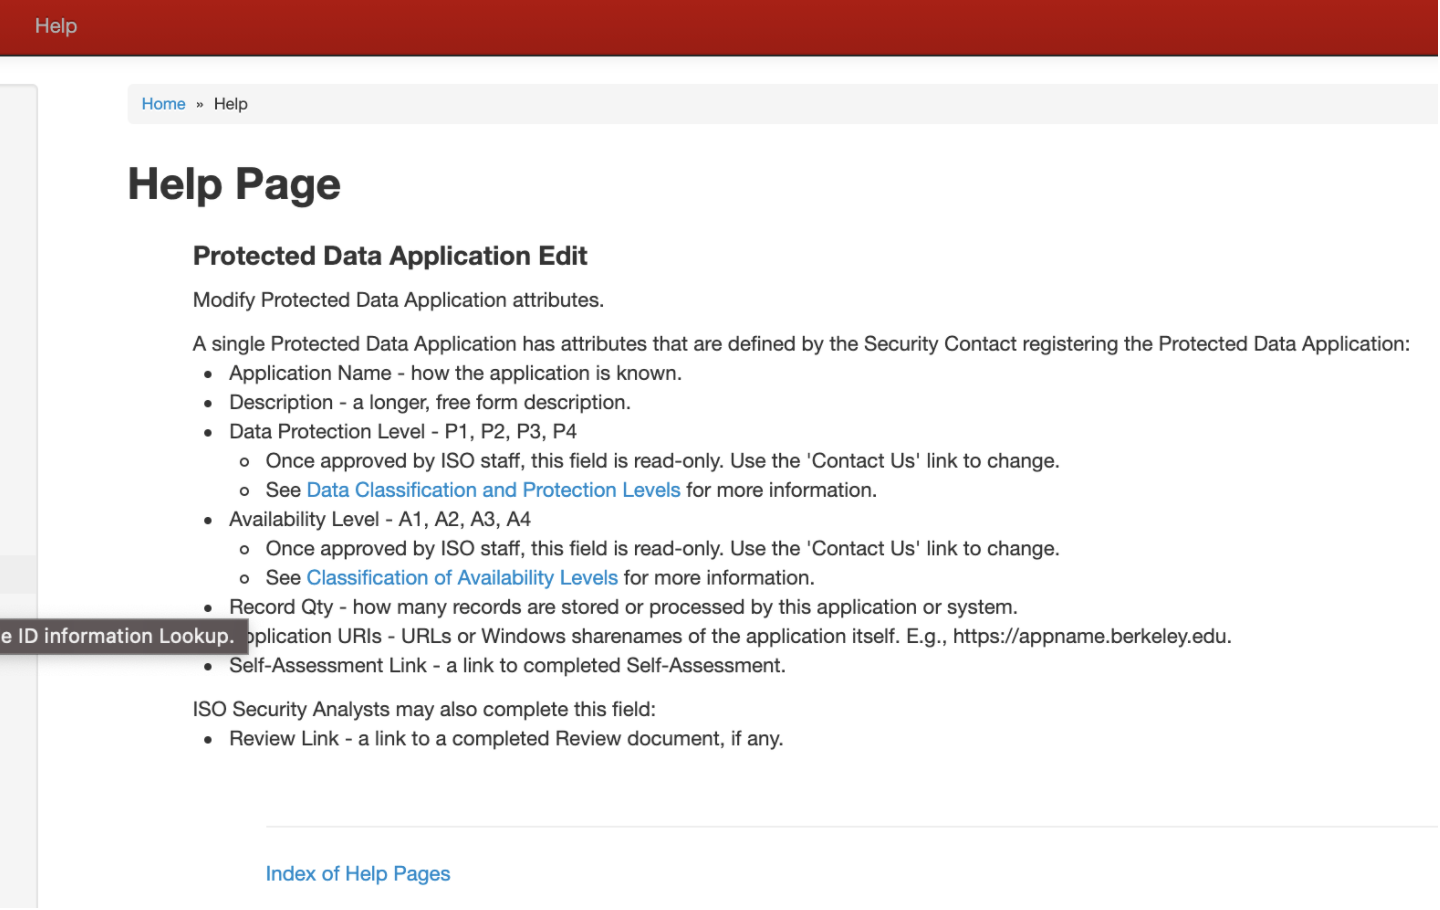 Protected Data Application Edit Help Page